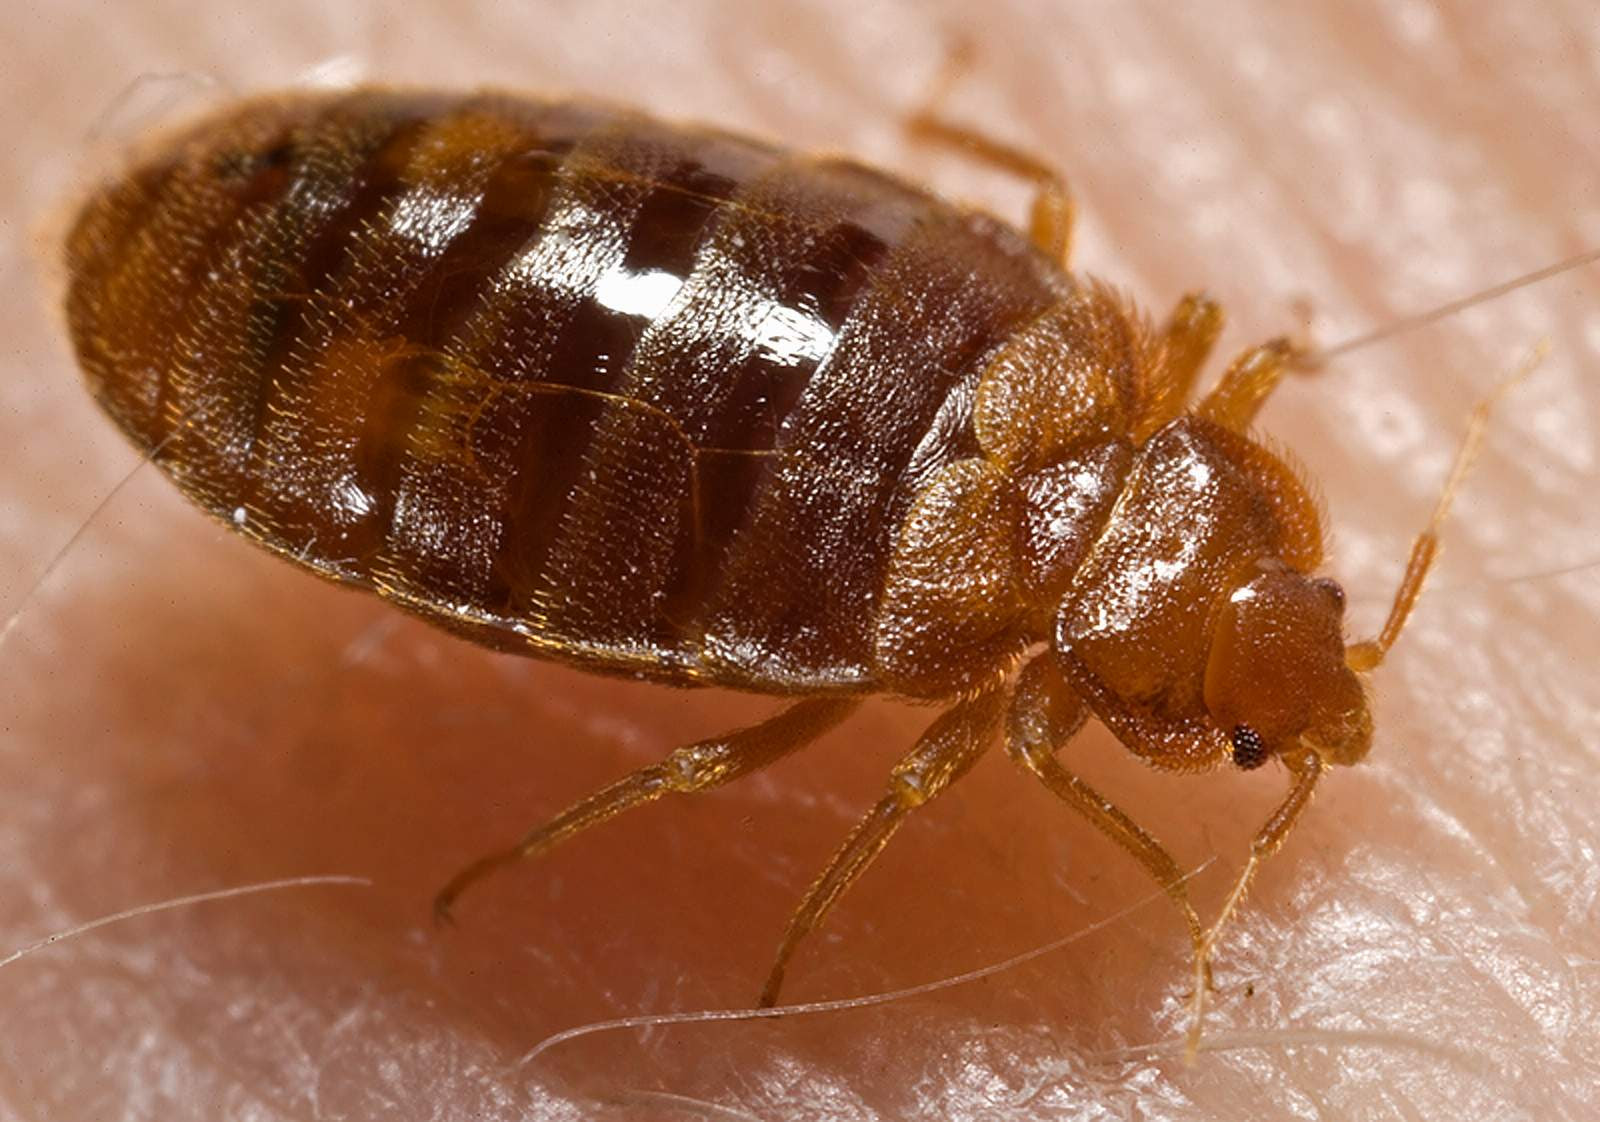 10 Worst Cities for Bed Bugs 2015  InvestorPlace